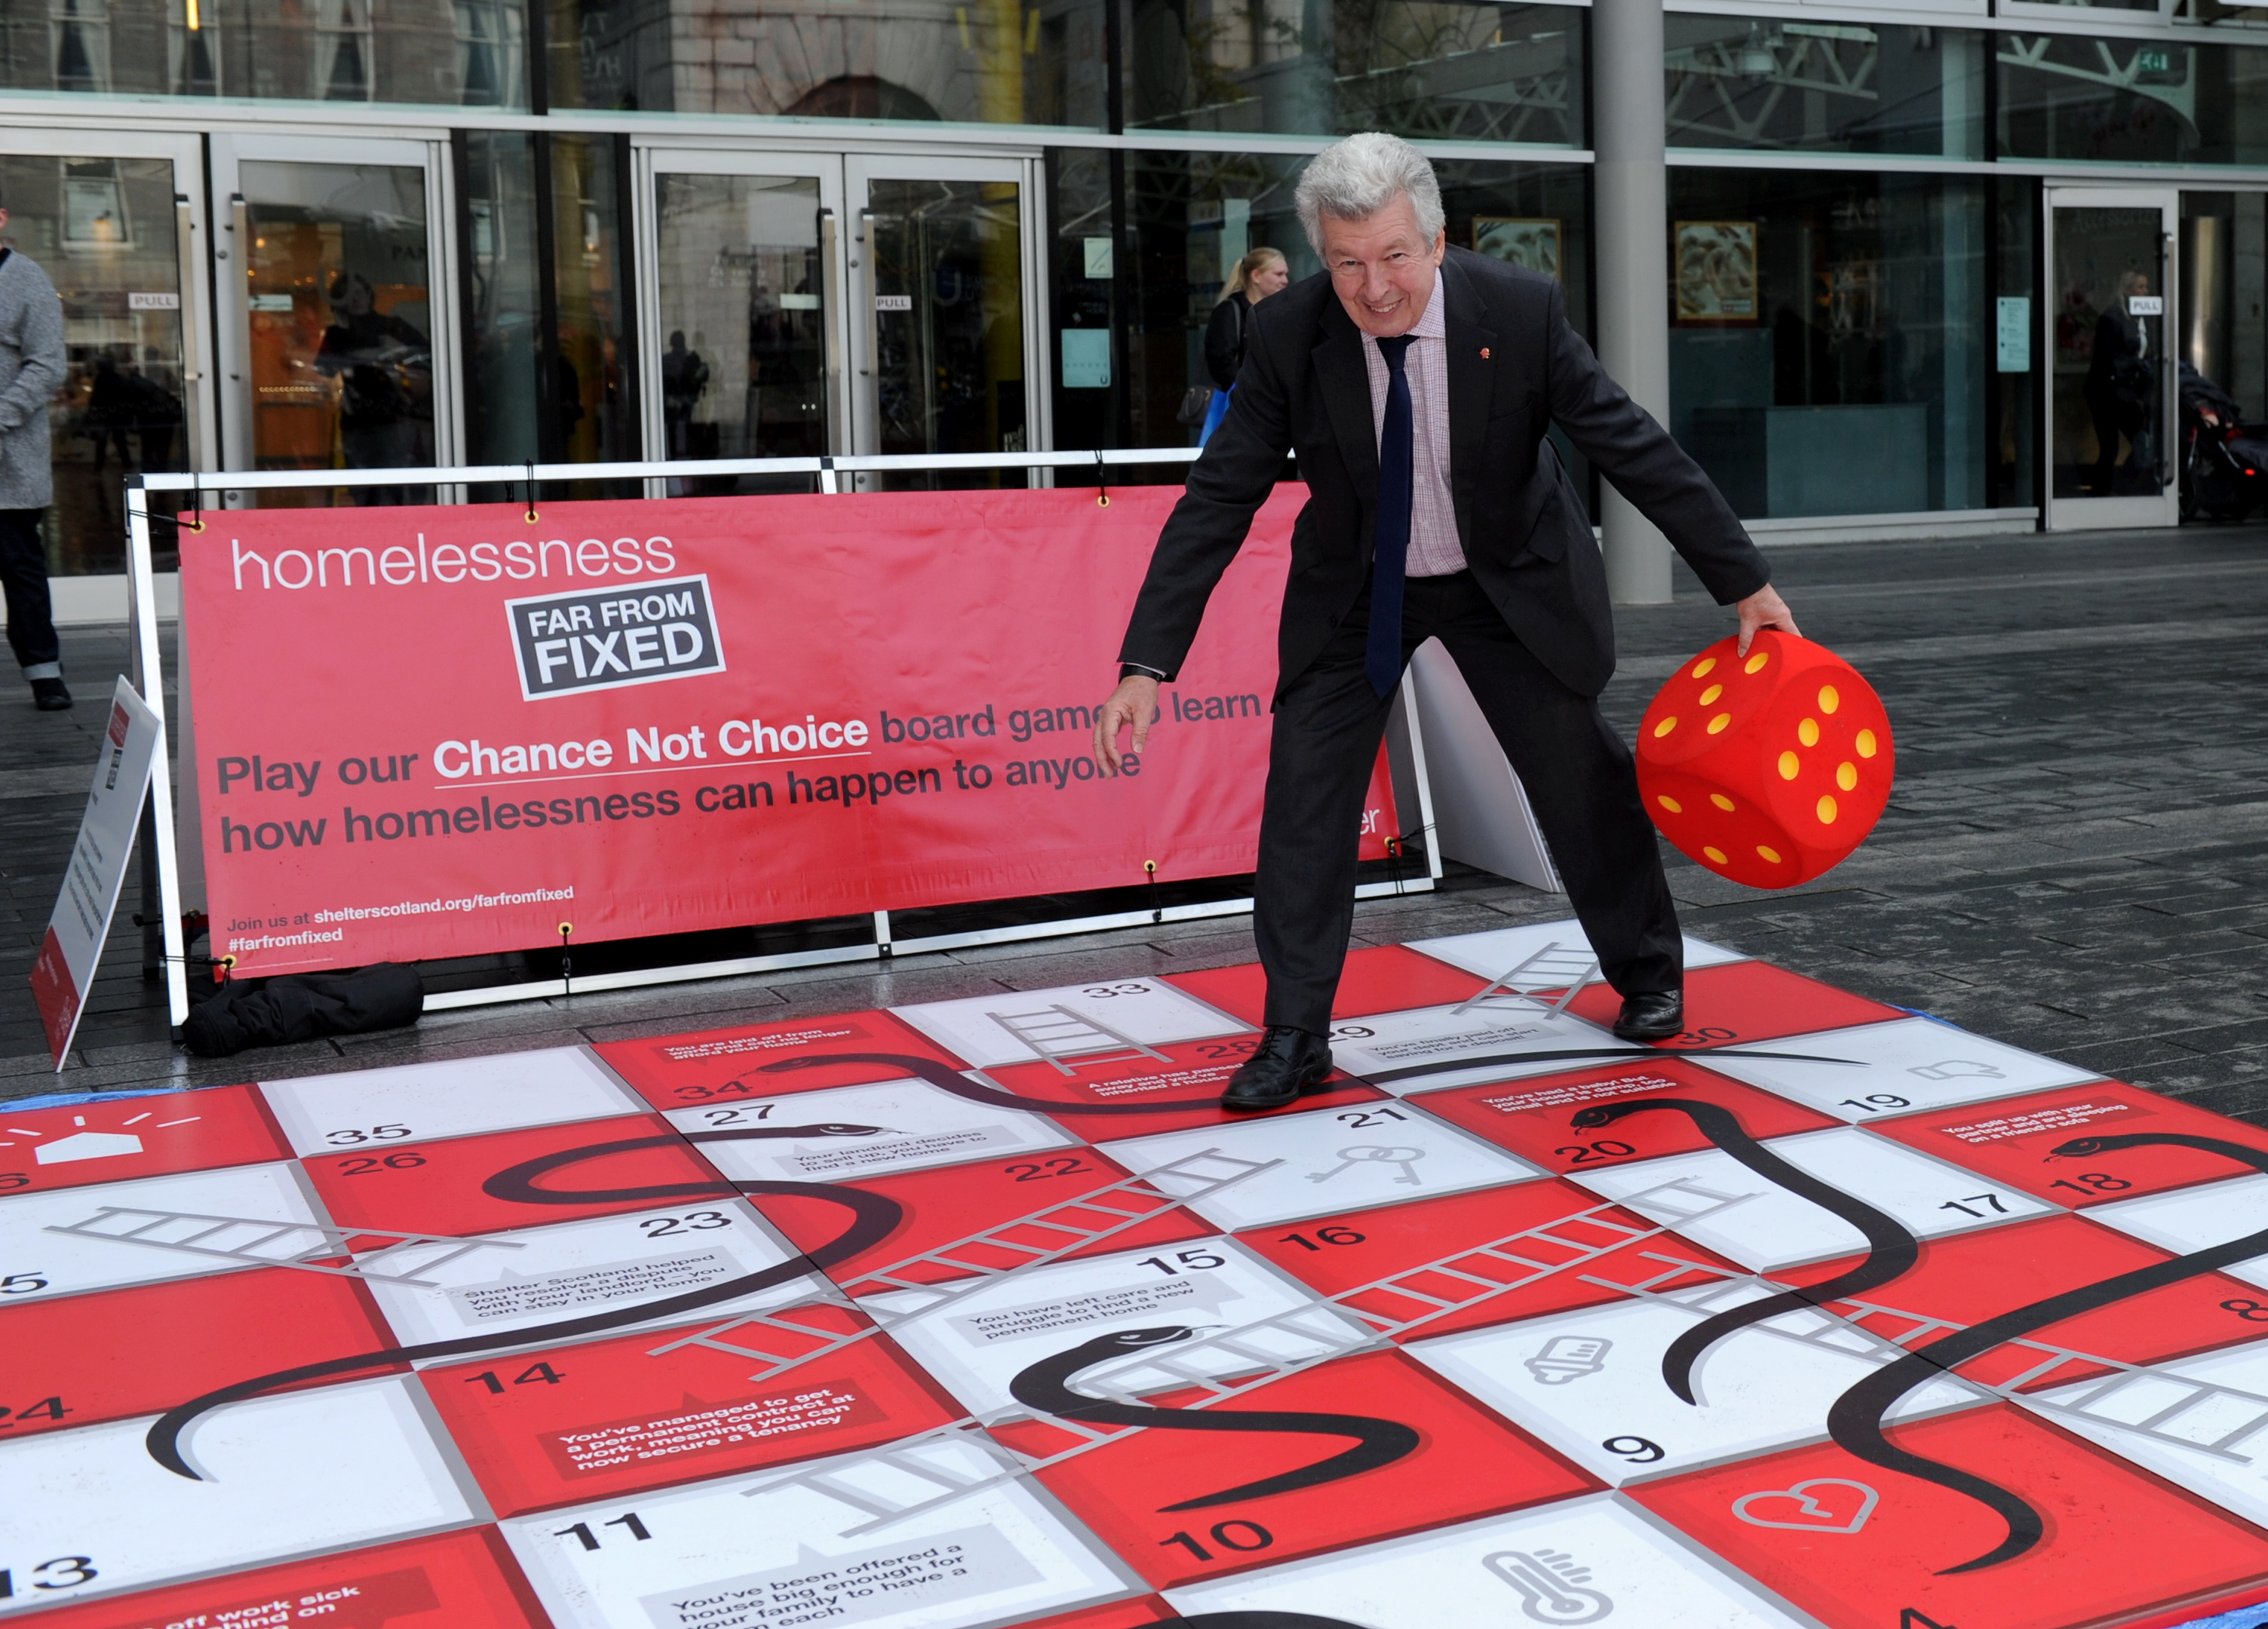 Lewis Macdonald and Jenny Laing play on Shelter's giant snakes and ladders board at Union Square.